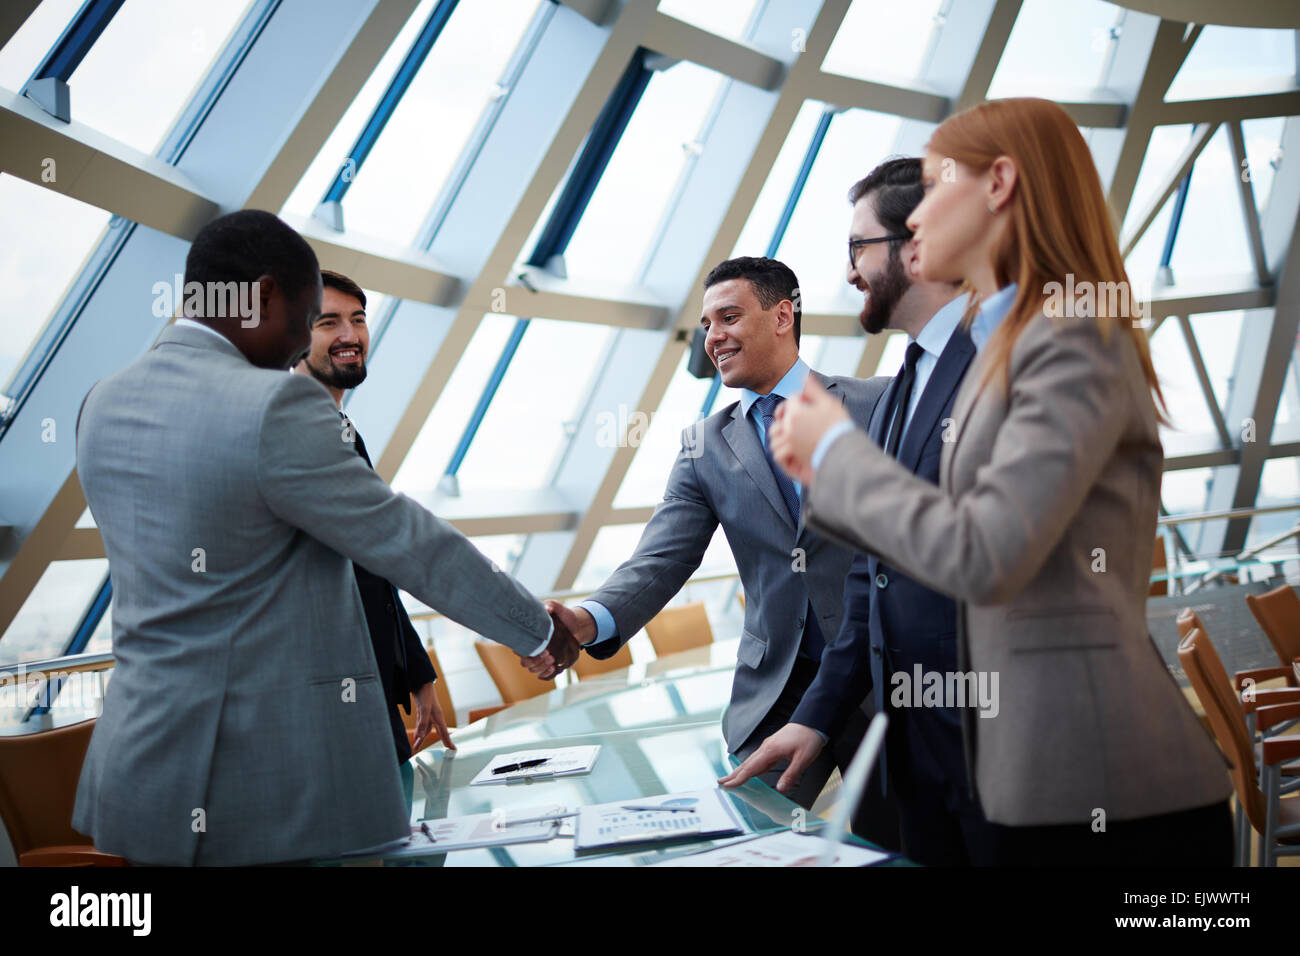 Business partners handshaking upon striking deal in office - Stock Image